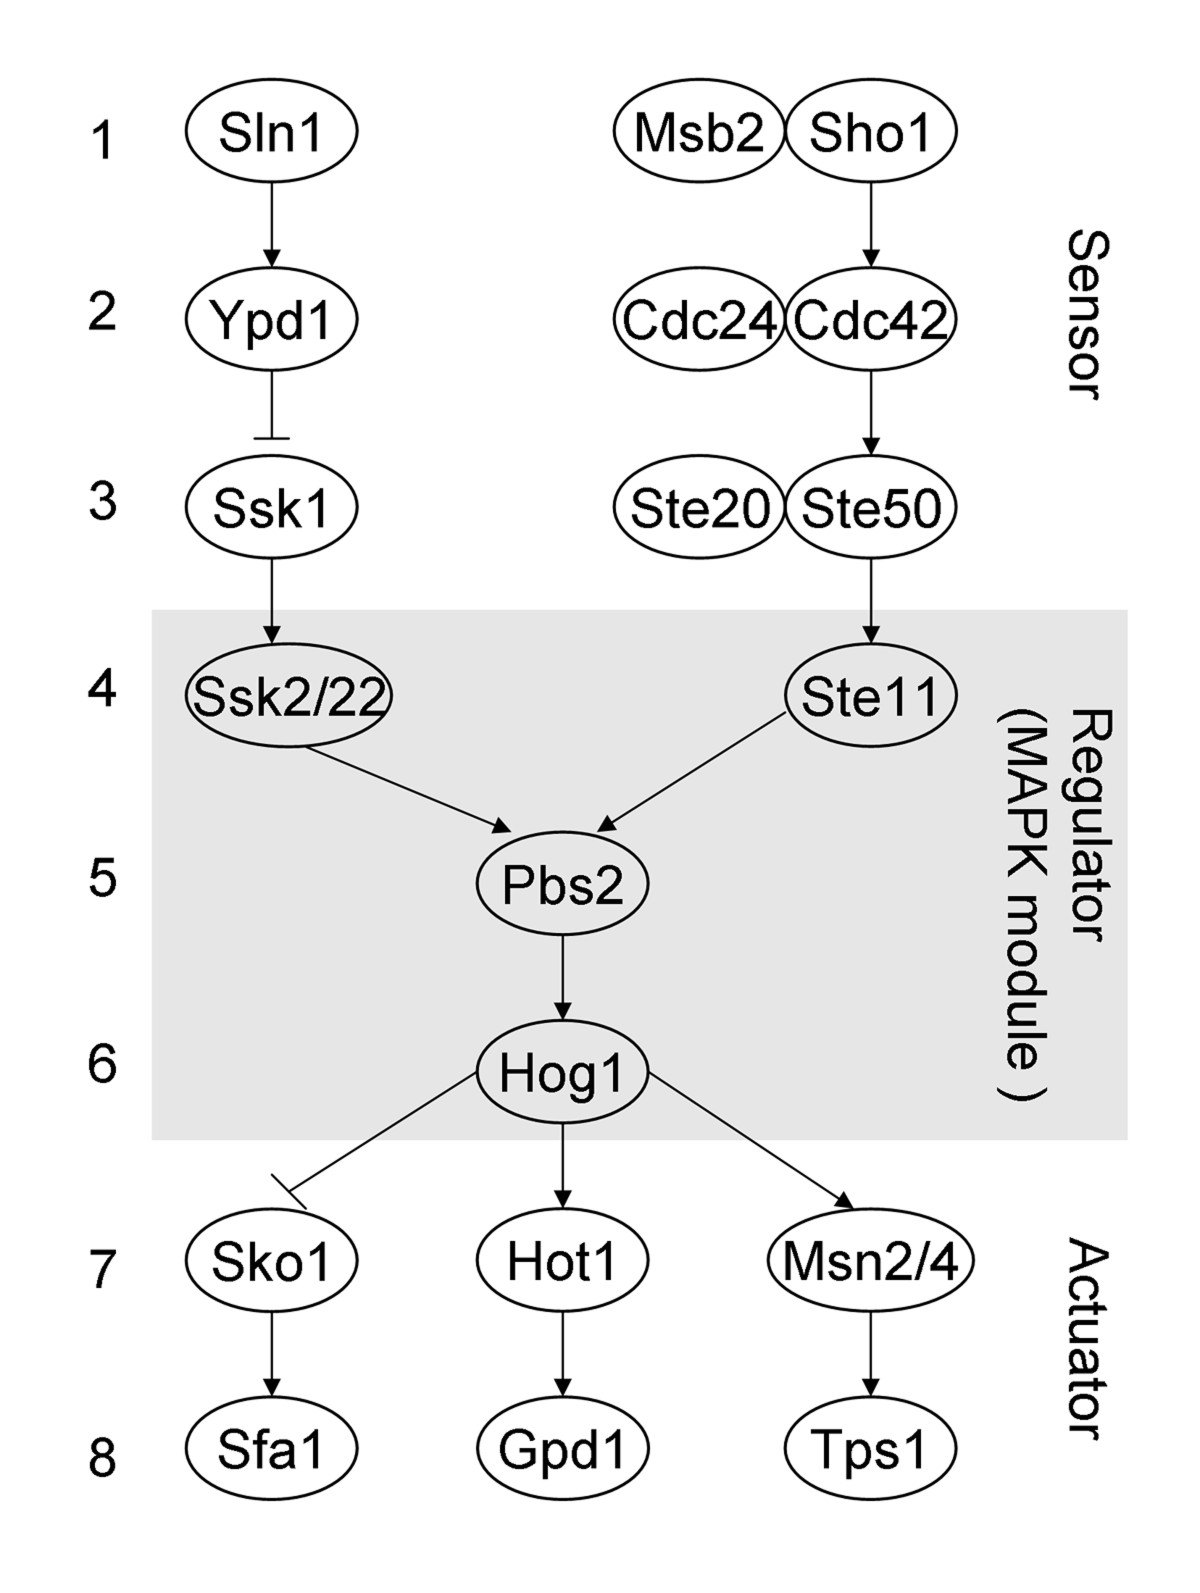 https://static-content.springer.com/image/art%3A10.1186%2F1745-6150-5-46/MediaObjects/13062_2010_Article_229_Fig1_HTML.jpg